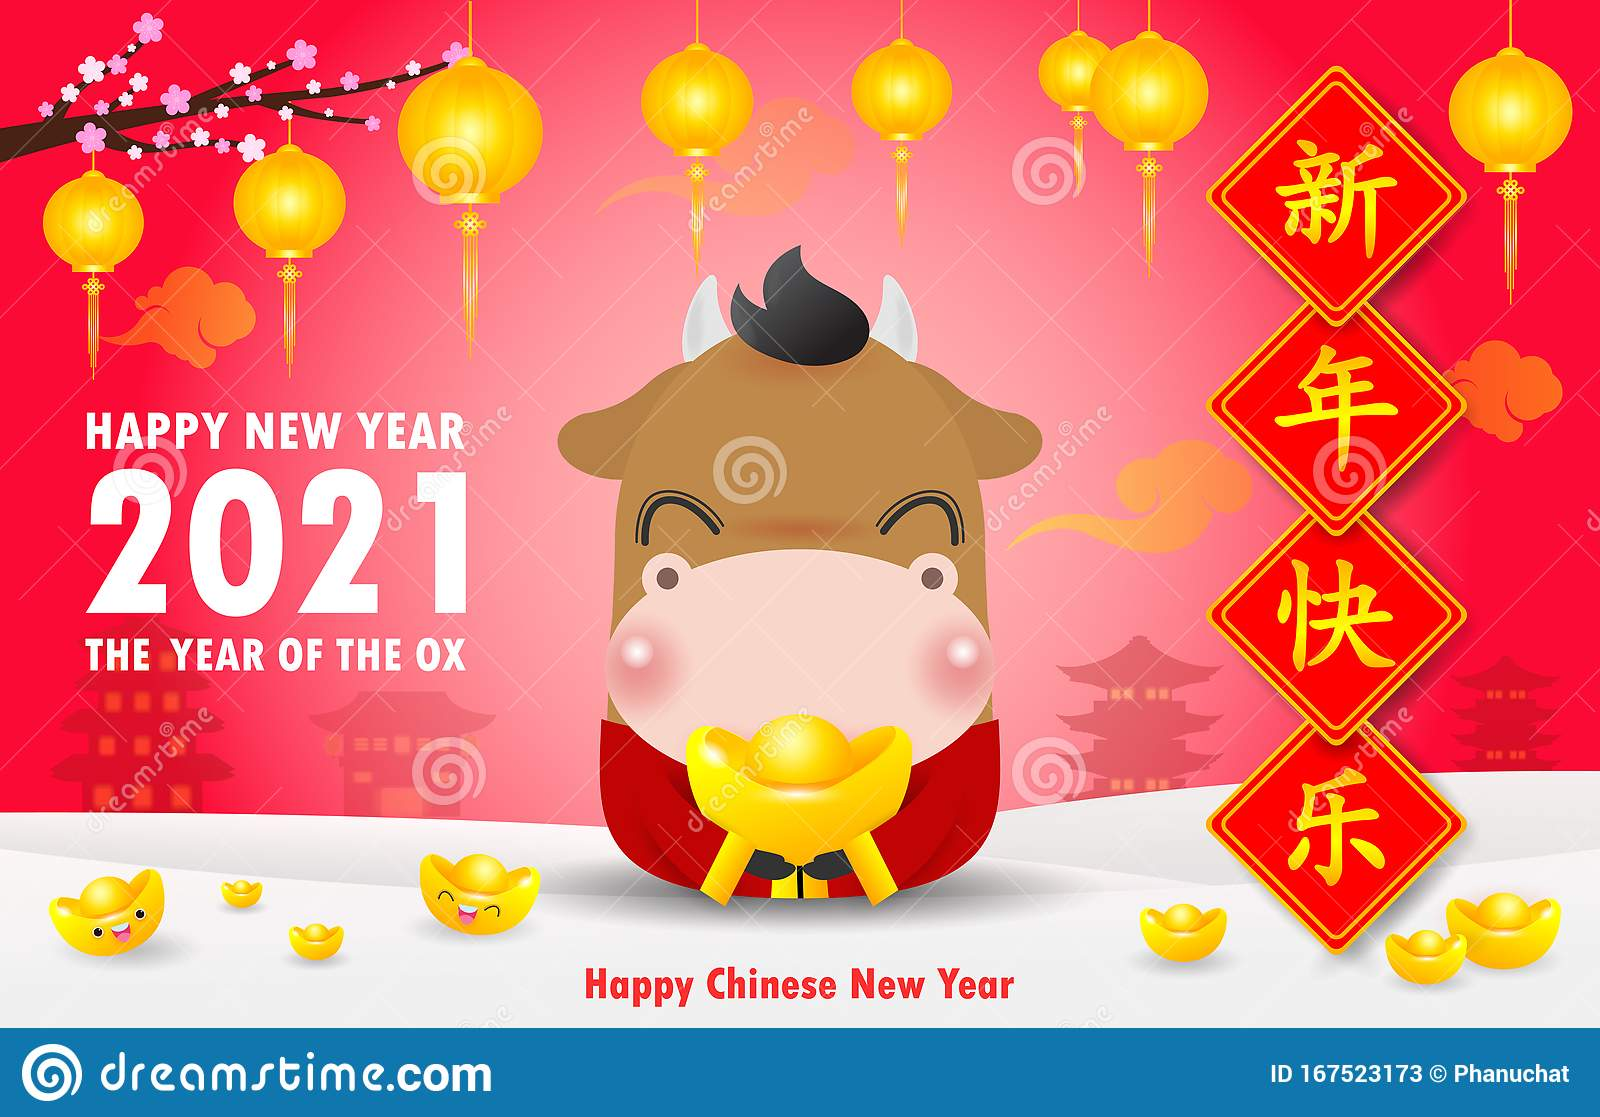 Happy Chinese New Year 2021 Greeting Card. Little Ox ...